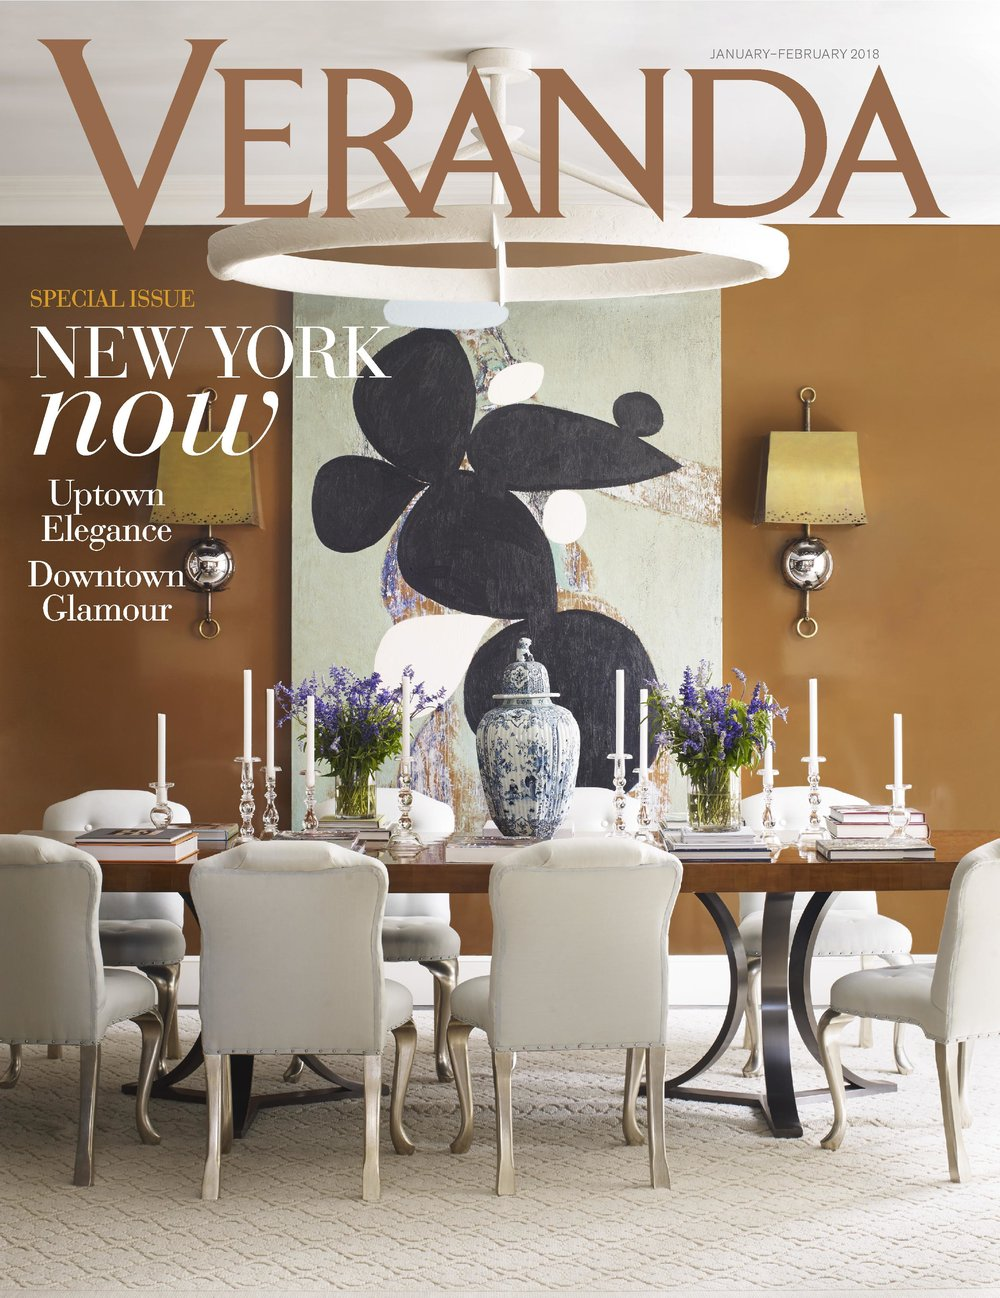 VERANDA JAN/FEB 2018